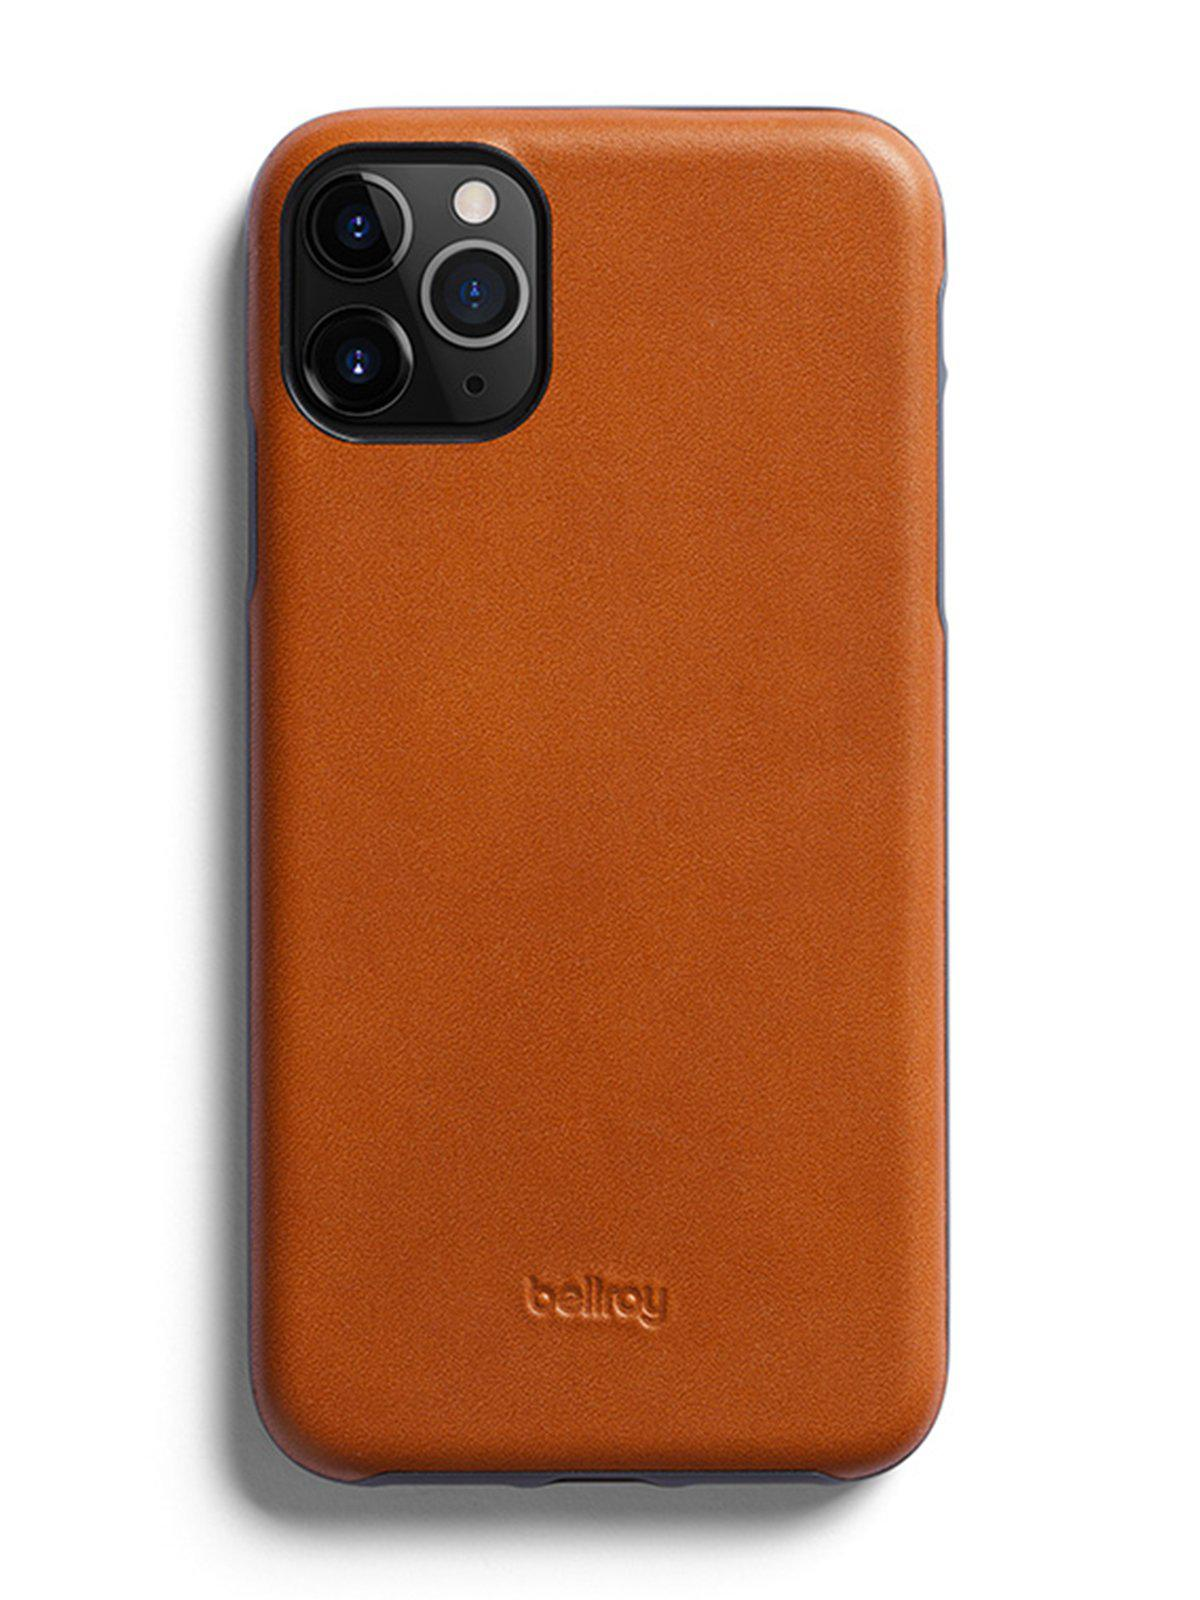 Bellroy Leather Phone Case for iPhone 11 Pro Max Caramel - MORE by Morello Indonesia